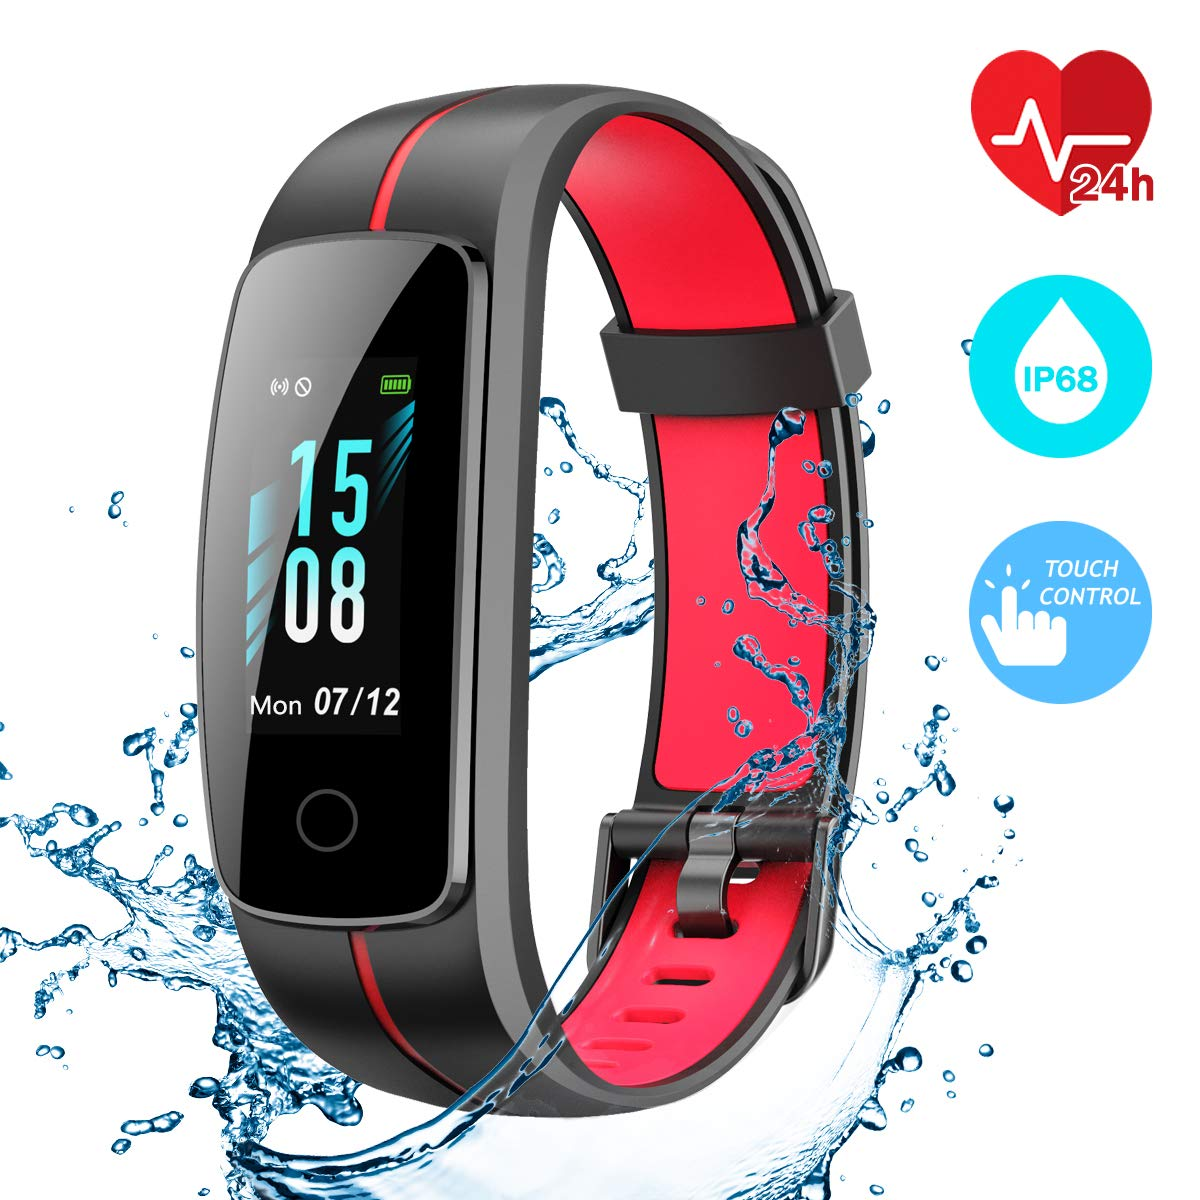 CHEREEKI Fitness Tracker, Waterproof IP68 Activity Tracker Touch Screen Smart Band with Heart Rate Monitor Sports Fitness Watch with Step Counter, ...